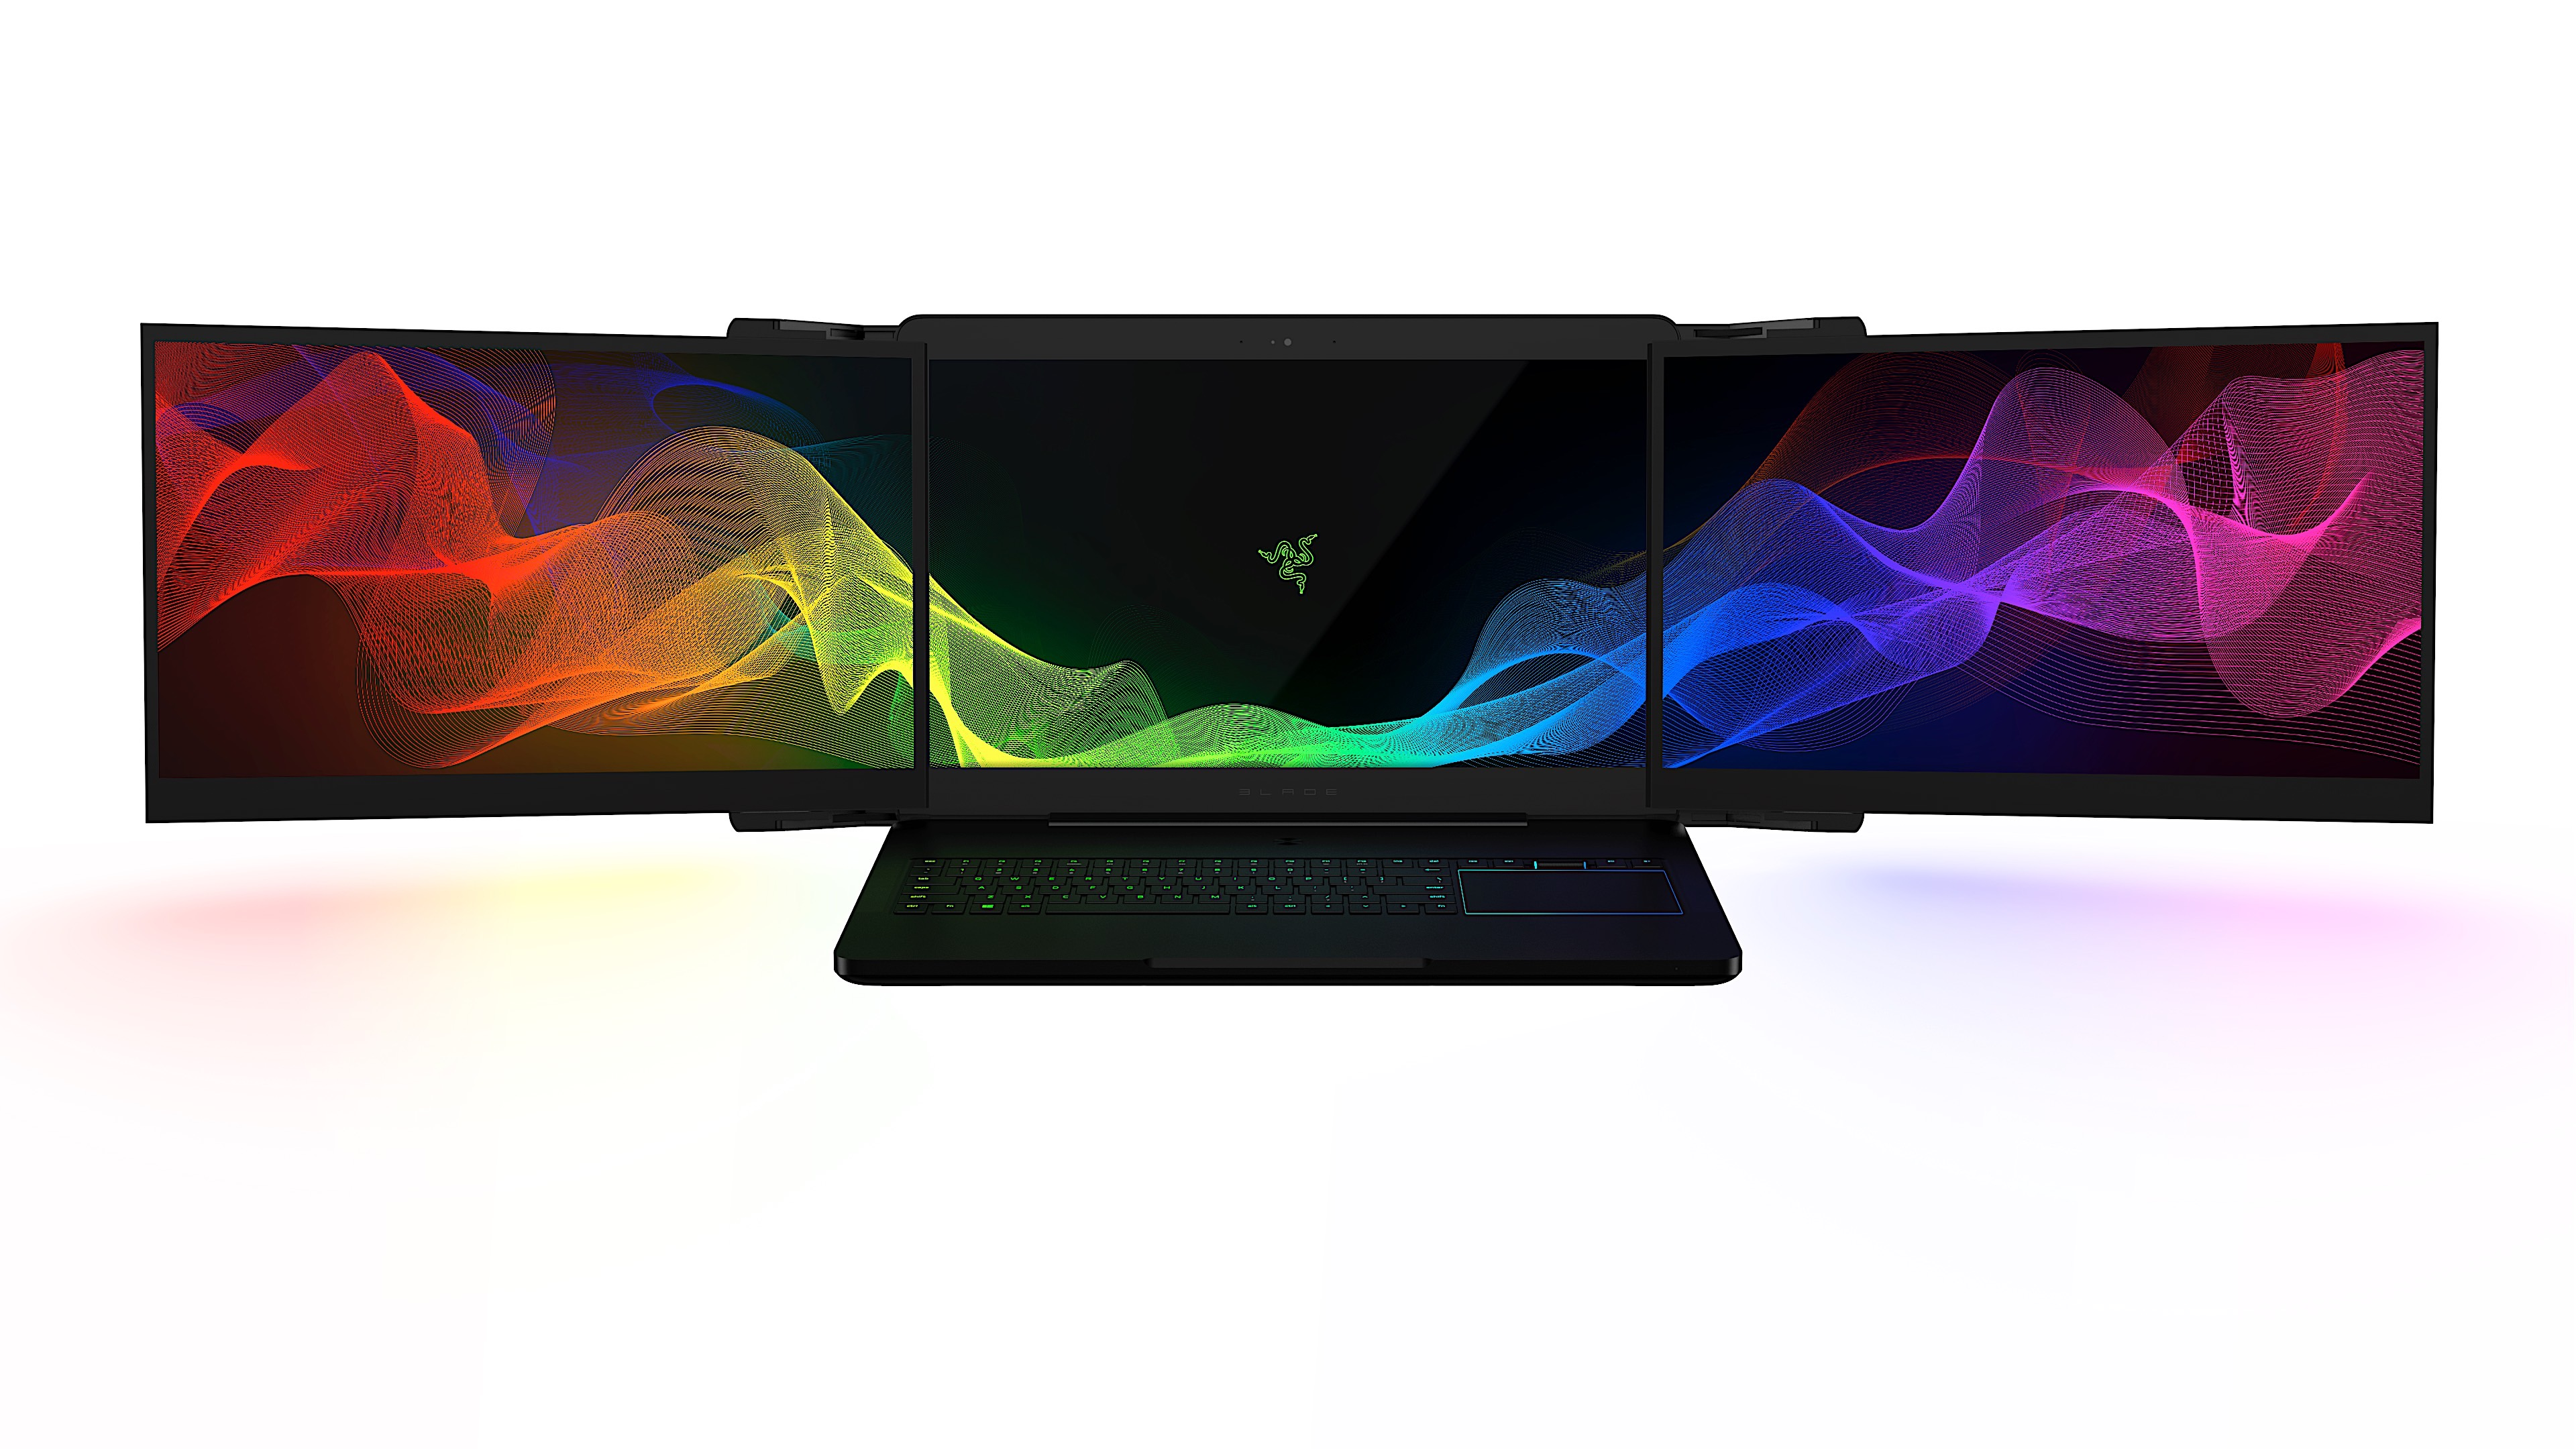 This three-monitor laptop is Razer's latest wild CES concept